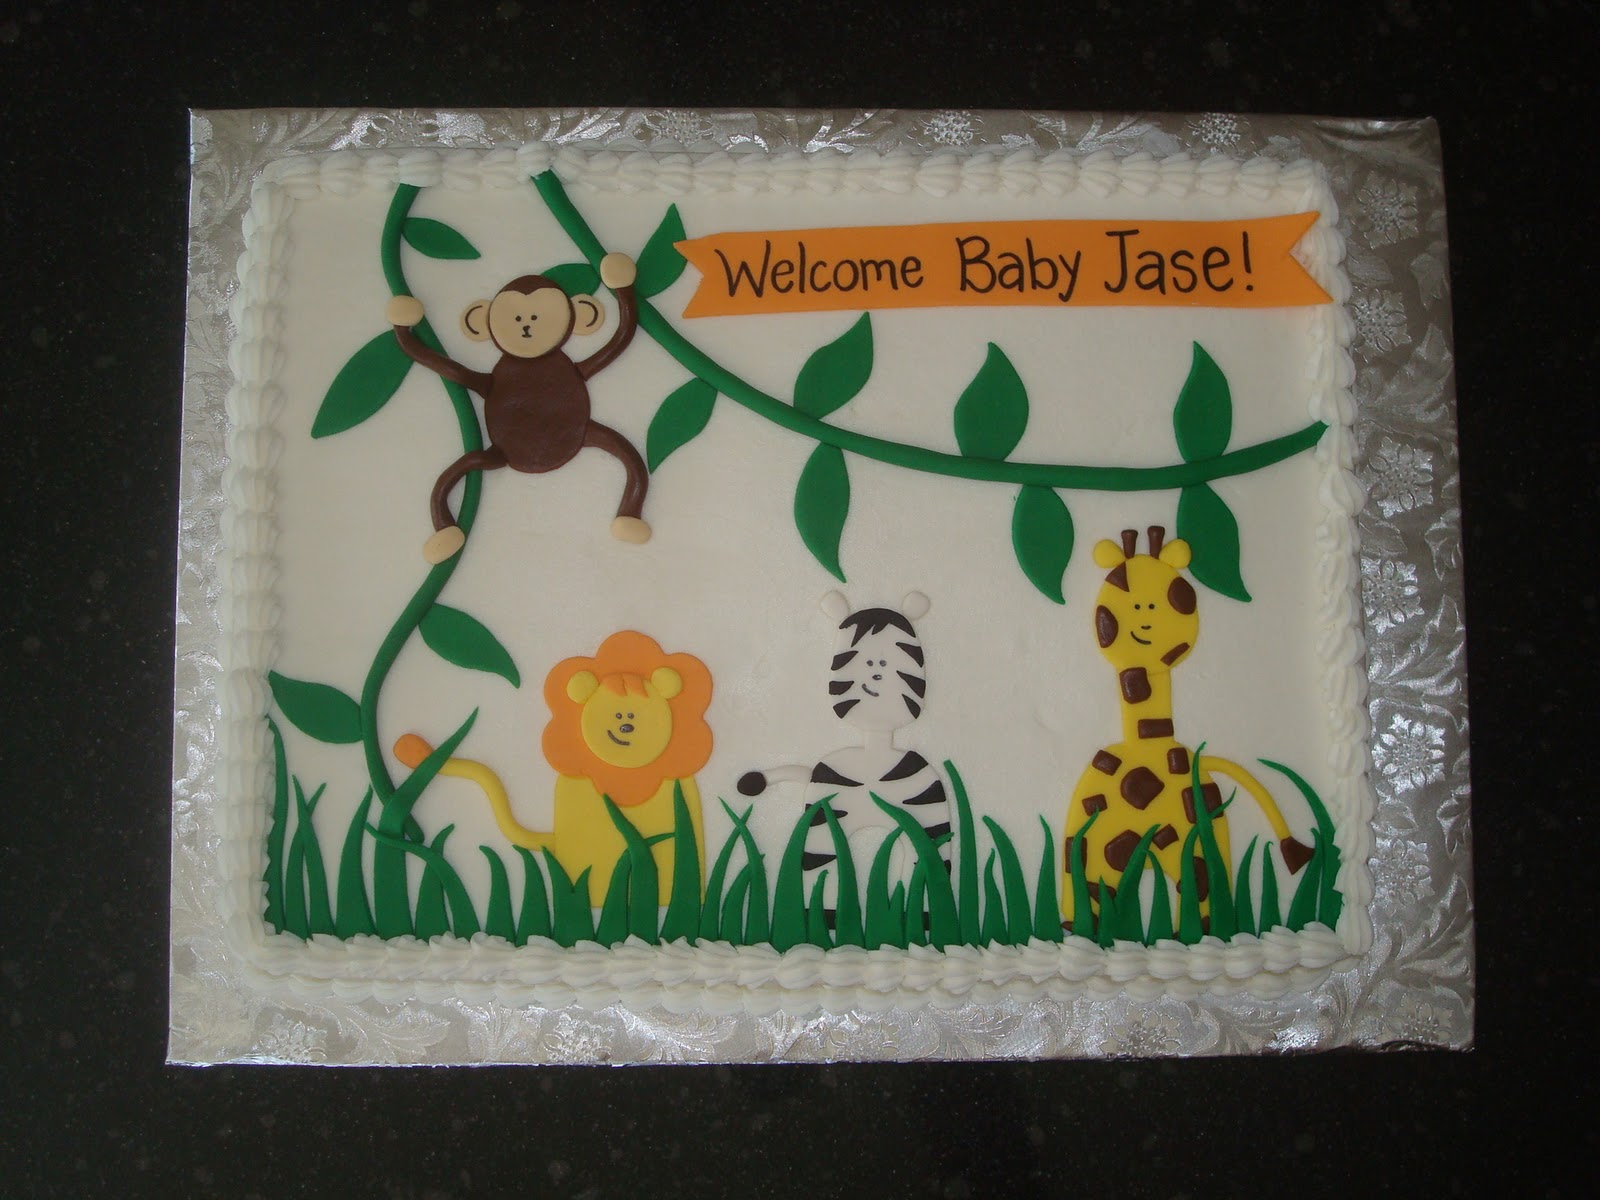 Jungle Theme Sheet Cake Images http://sugarboosweets.blogspot.com/2010/10/safari-baby-shower-cake.html